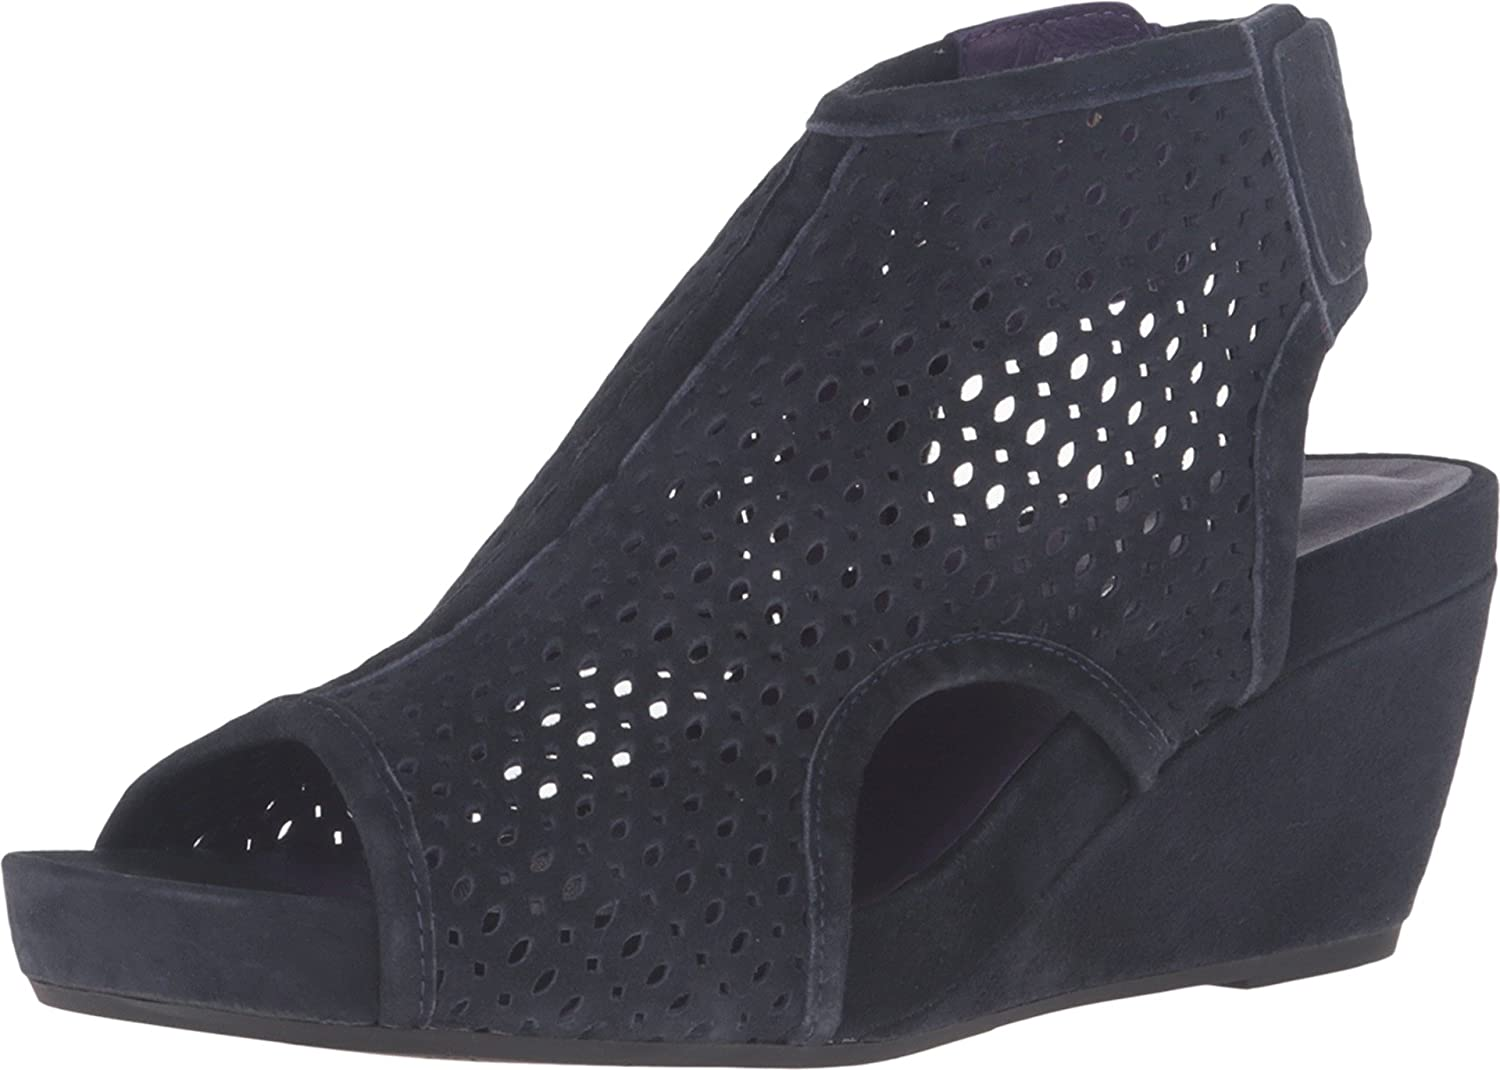 VANELi Inez Navy Suede Gunmetal Studs Women's Wedge shoes